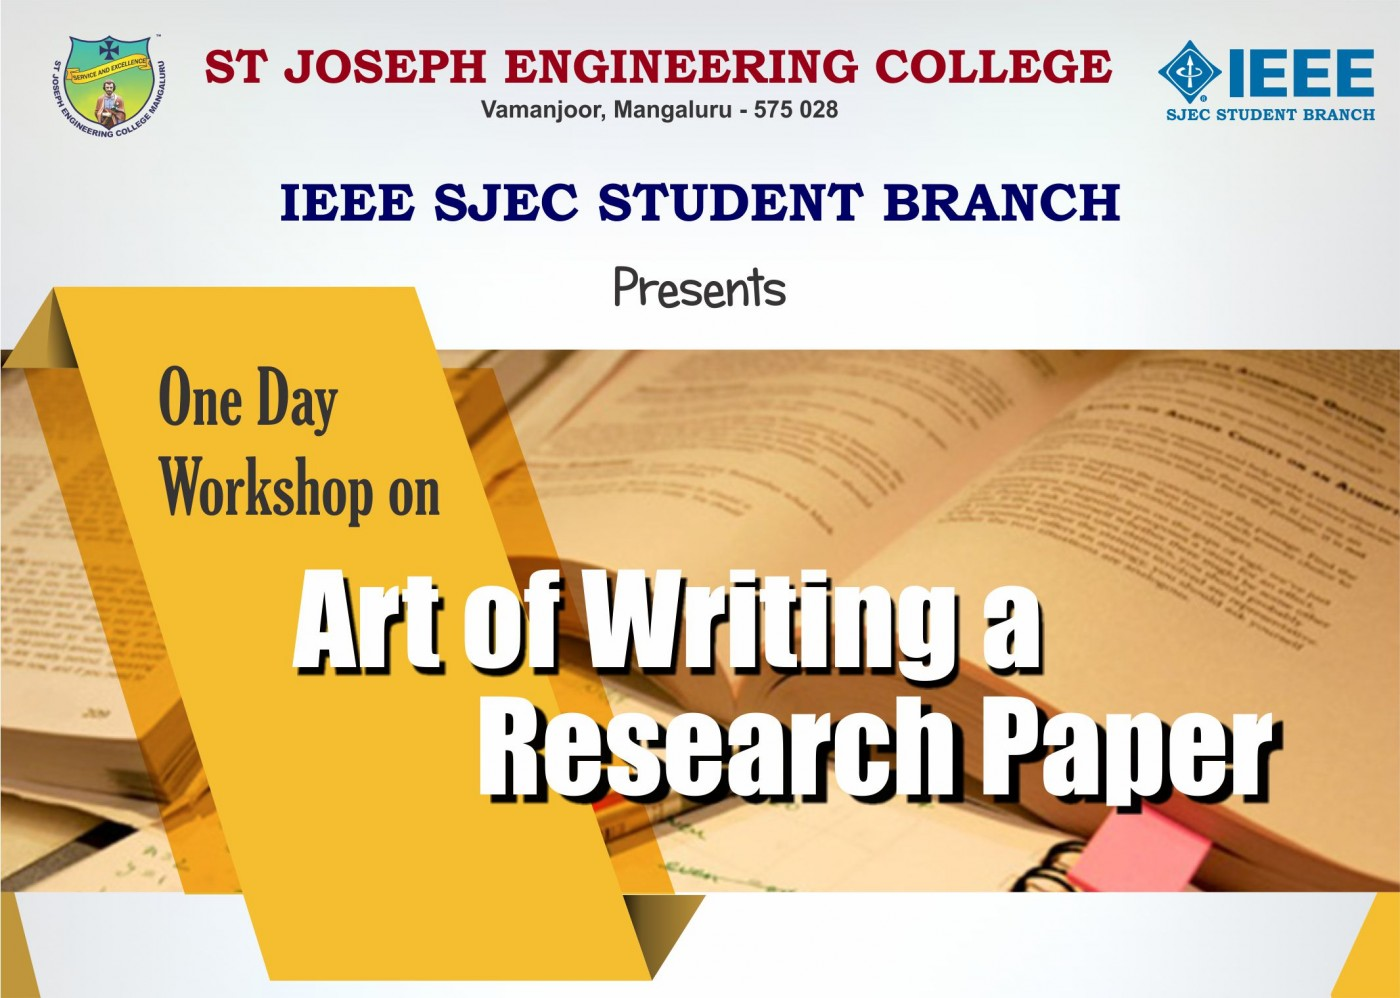 008 Workshop Banner Research Paper Writing Phenomenal The How To Write Outline A Pdf Handbook 8th Edition 1400